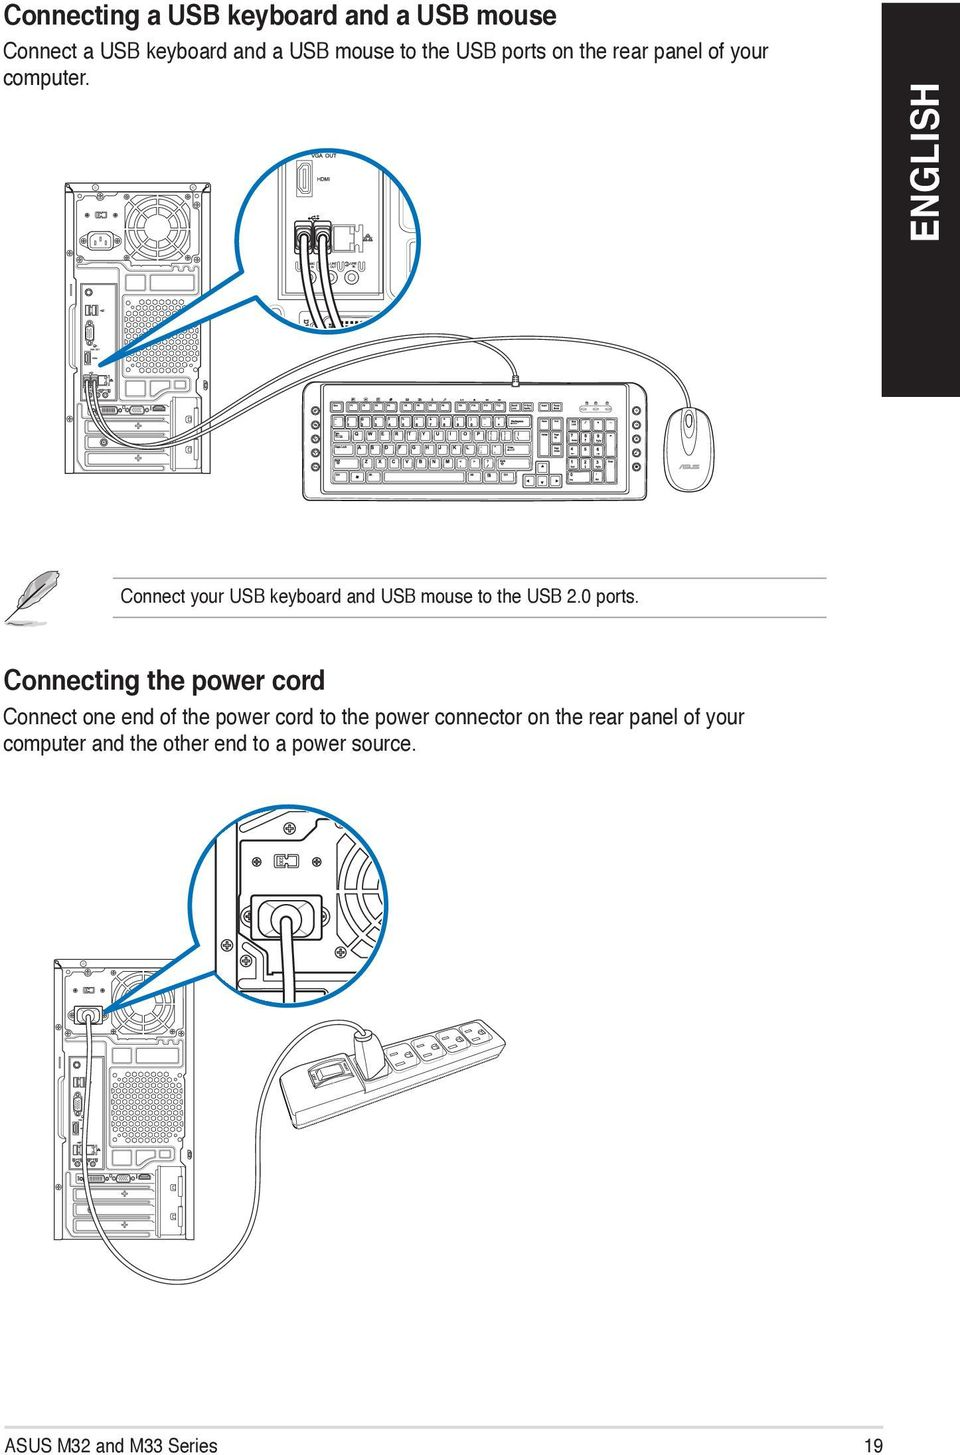 Asus Desktop Pc M32 And M33 Series User Manual Pdf Usb Cable Wiring Diagram Connect Your Keyboard Mouse To The 20 Ports